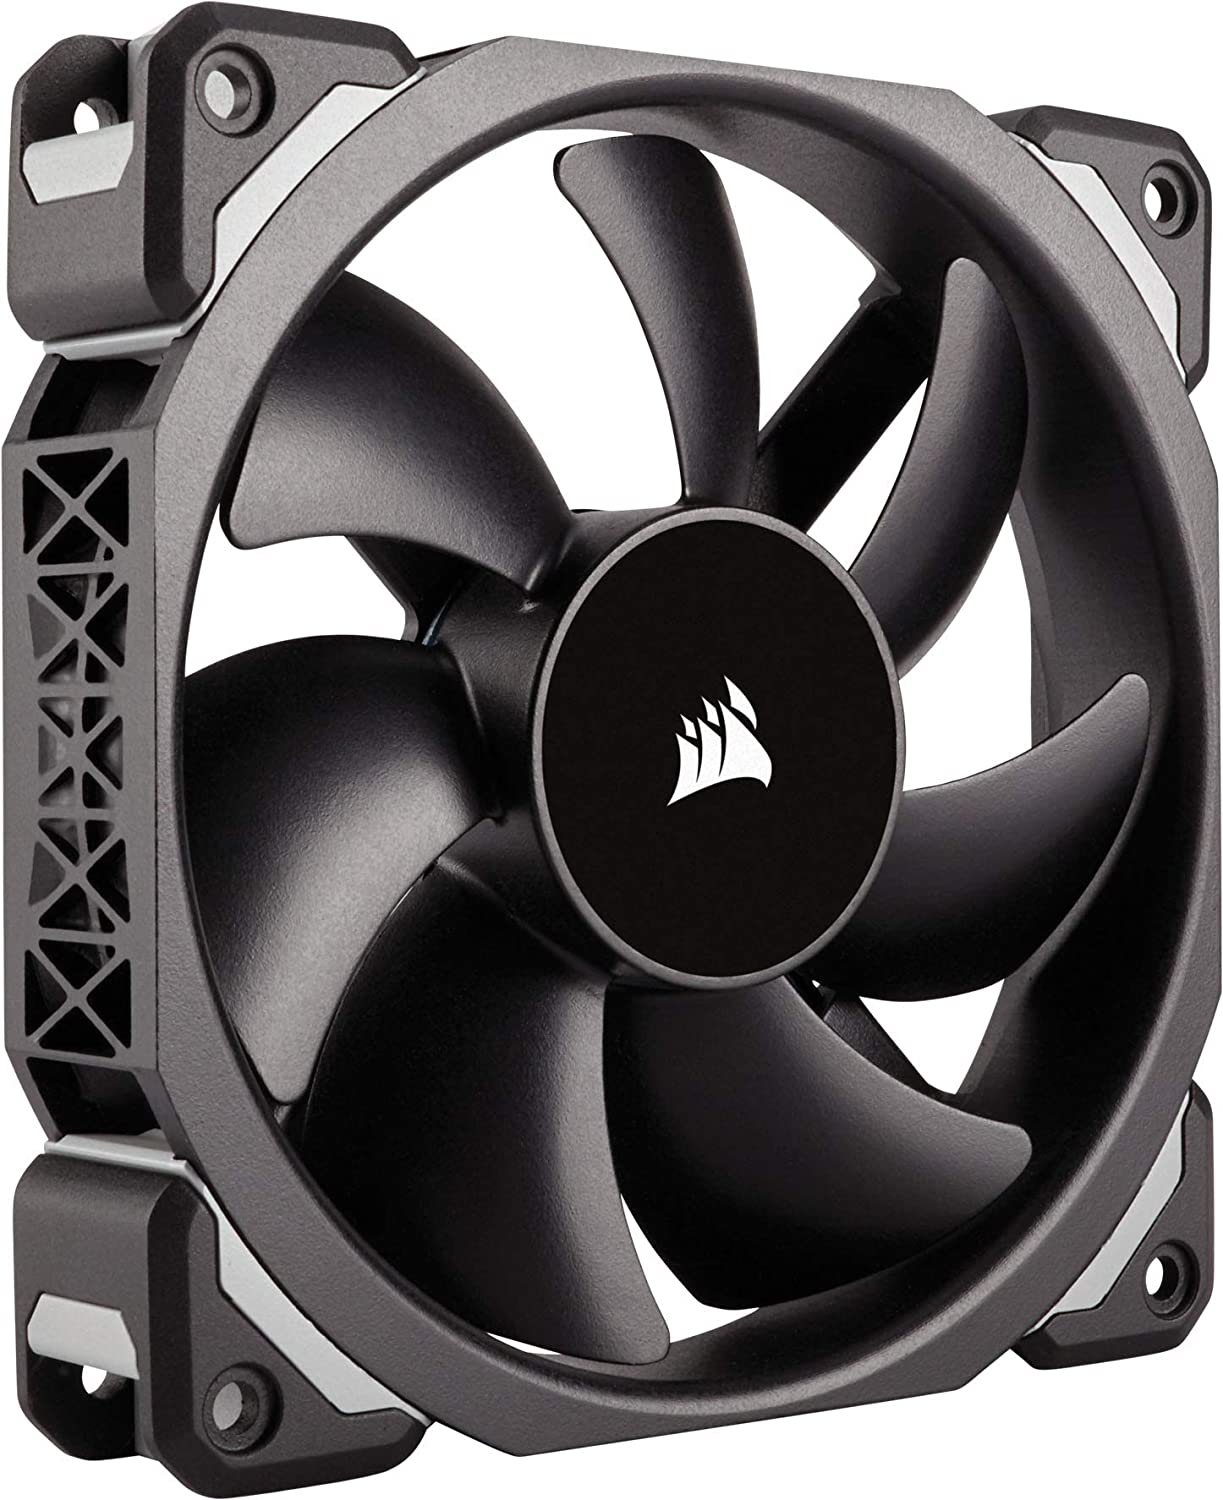 Corsair ML120 Pro, 120mm Premium Magnetic Levitation Cooling Fan CO-9050040-WW